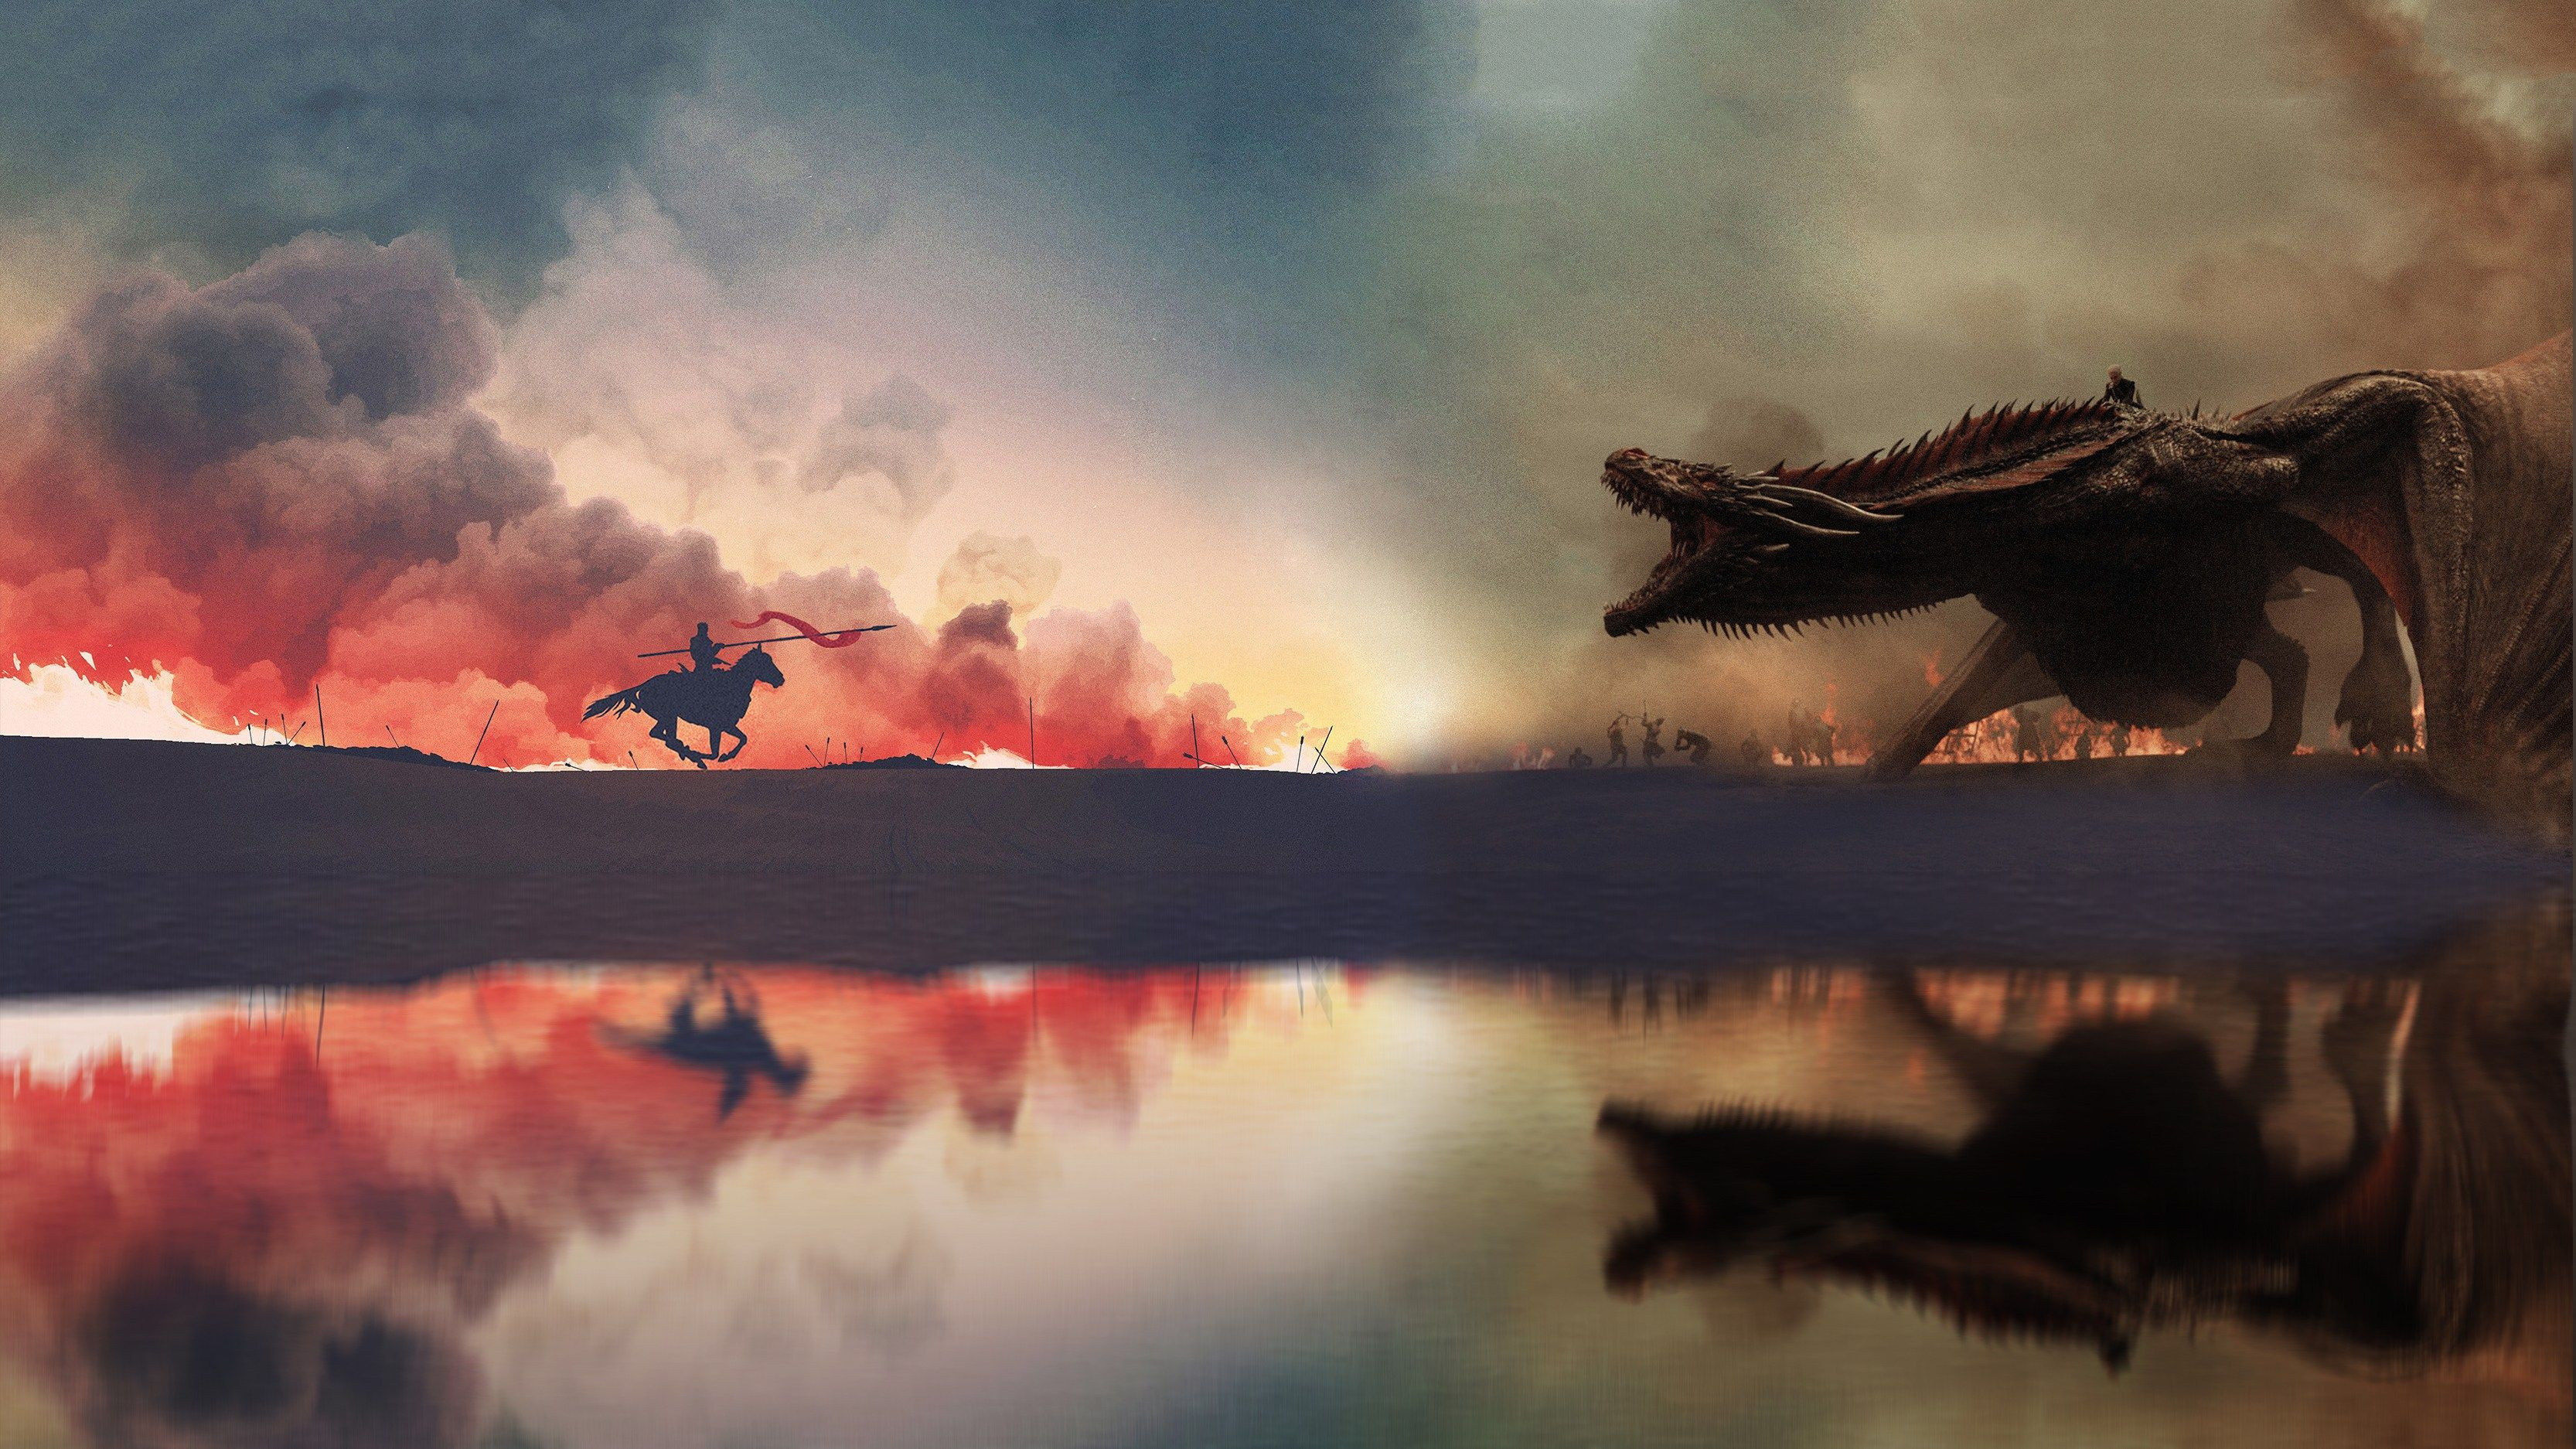 Download Game Of Thrones War Has Started Artwork 4k 6v Ultra Hd Wallpaper 2018 Hd Widesc Game Of Thrones Artwork Drogon Game Of Thrones Game Of Thrones Dragons